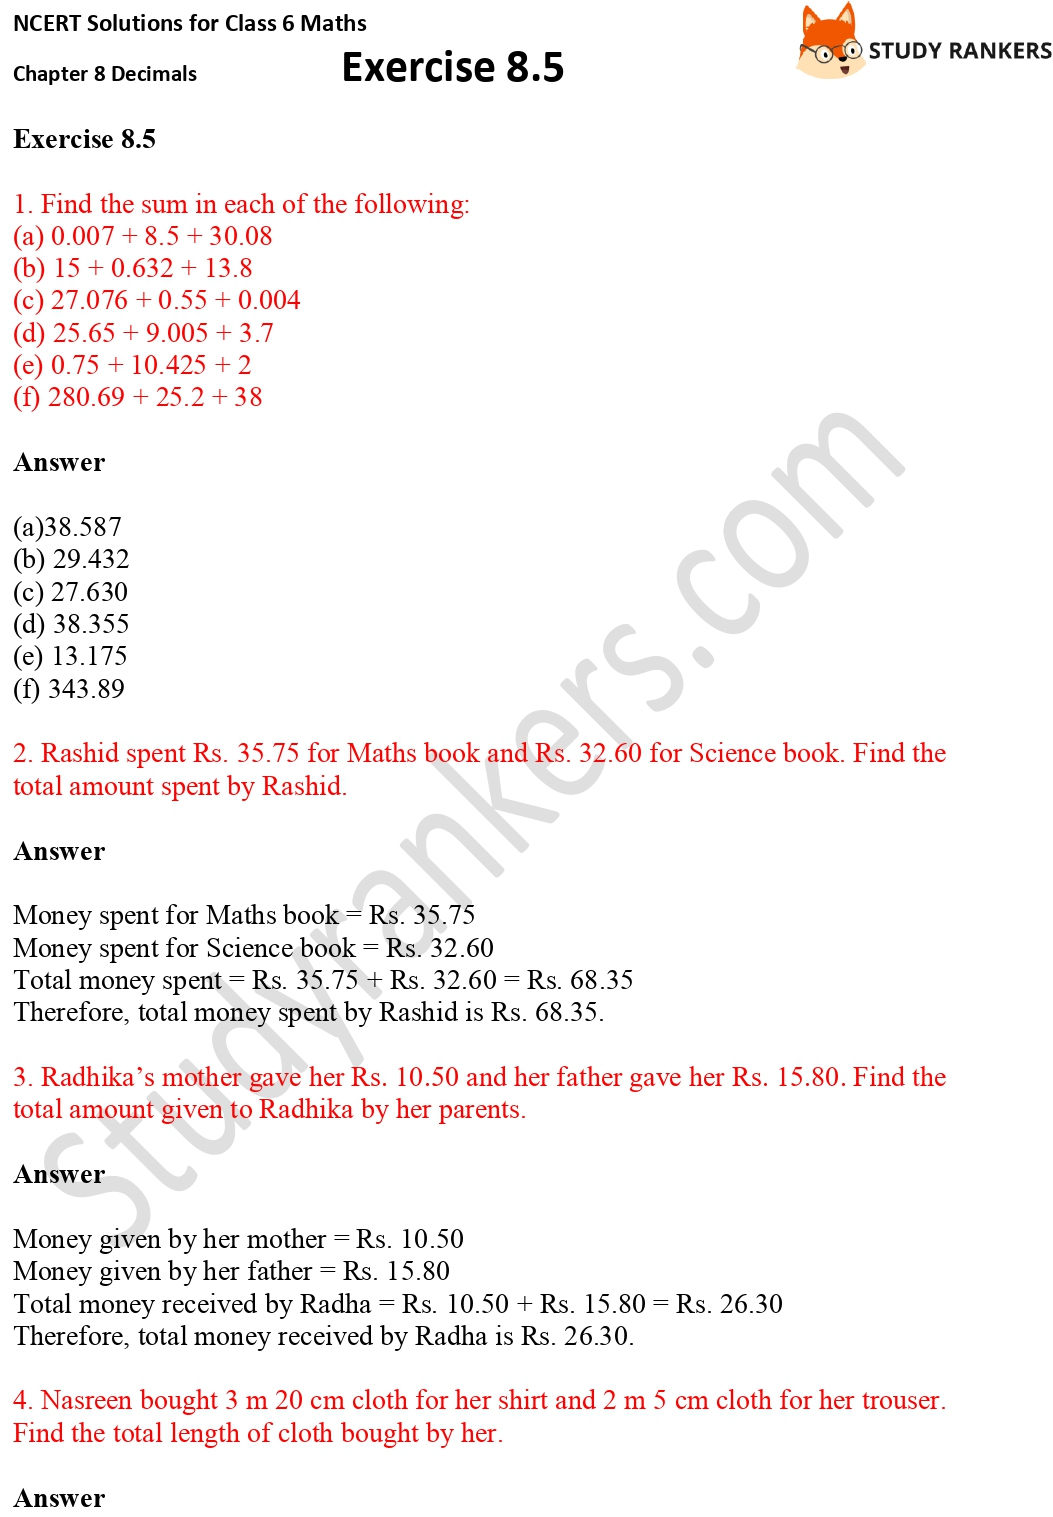 NCERT Solutions for Class 6 Maths Chapter 8 Decimals Exercise 8.5 Part 1